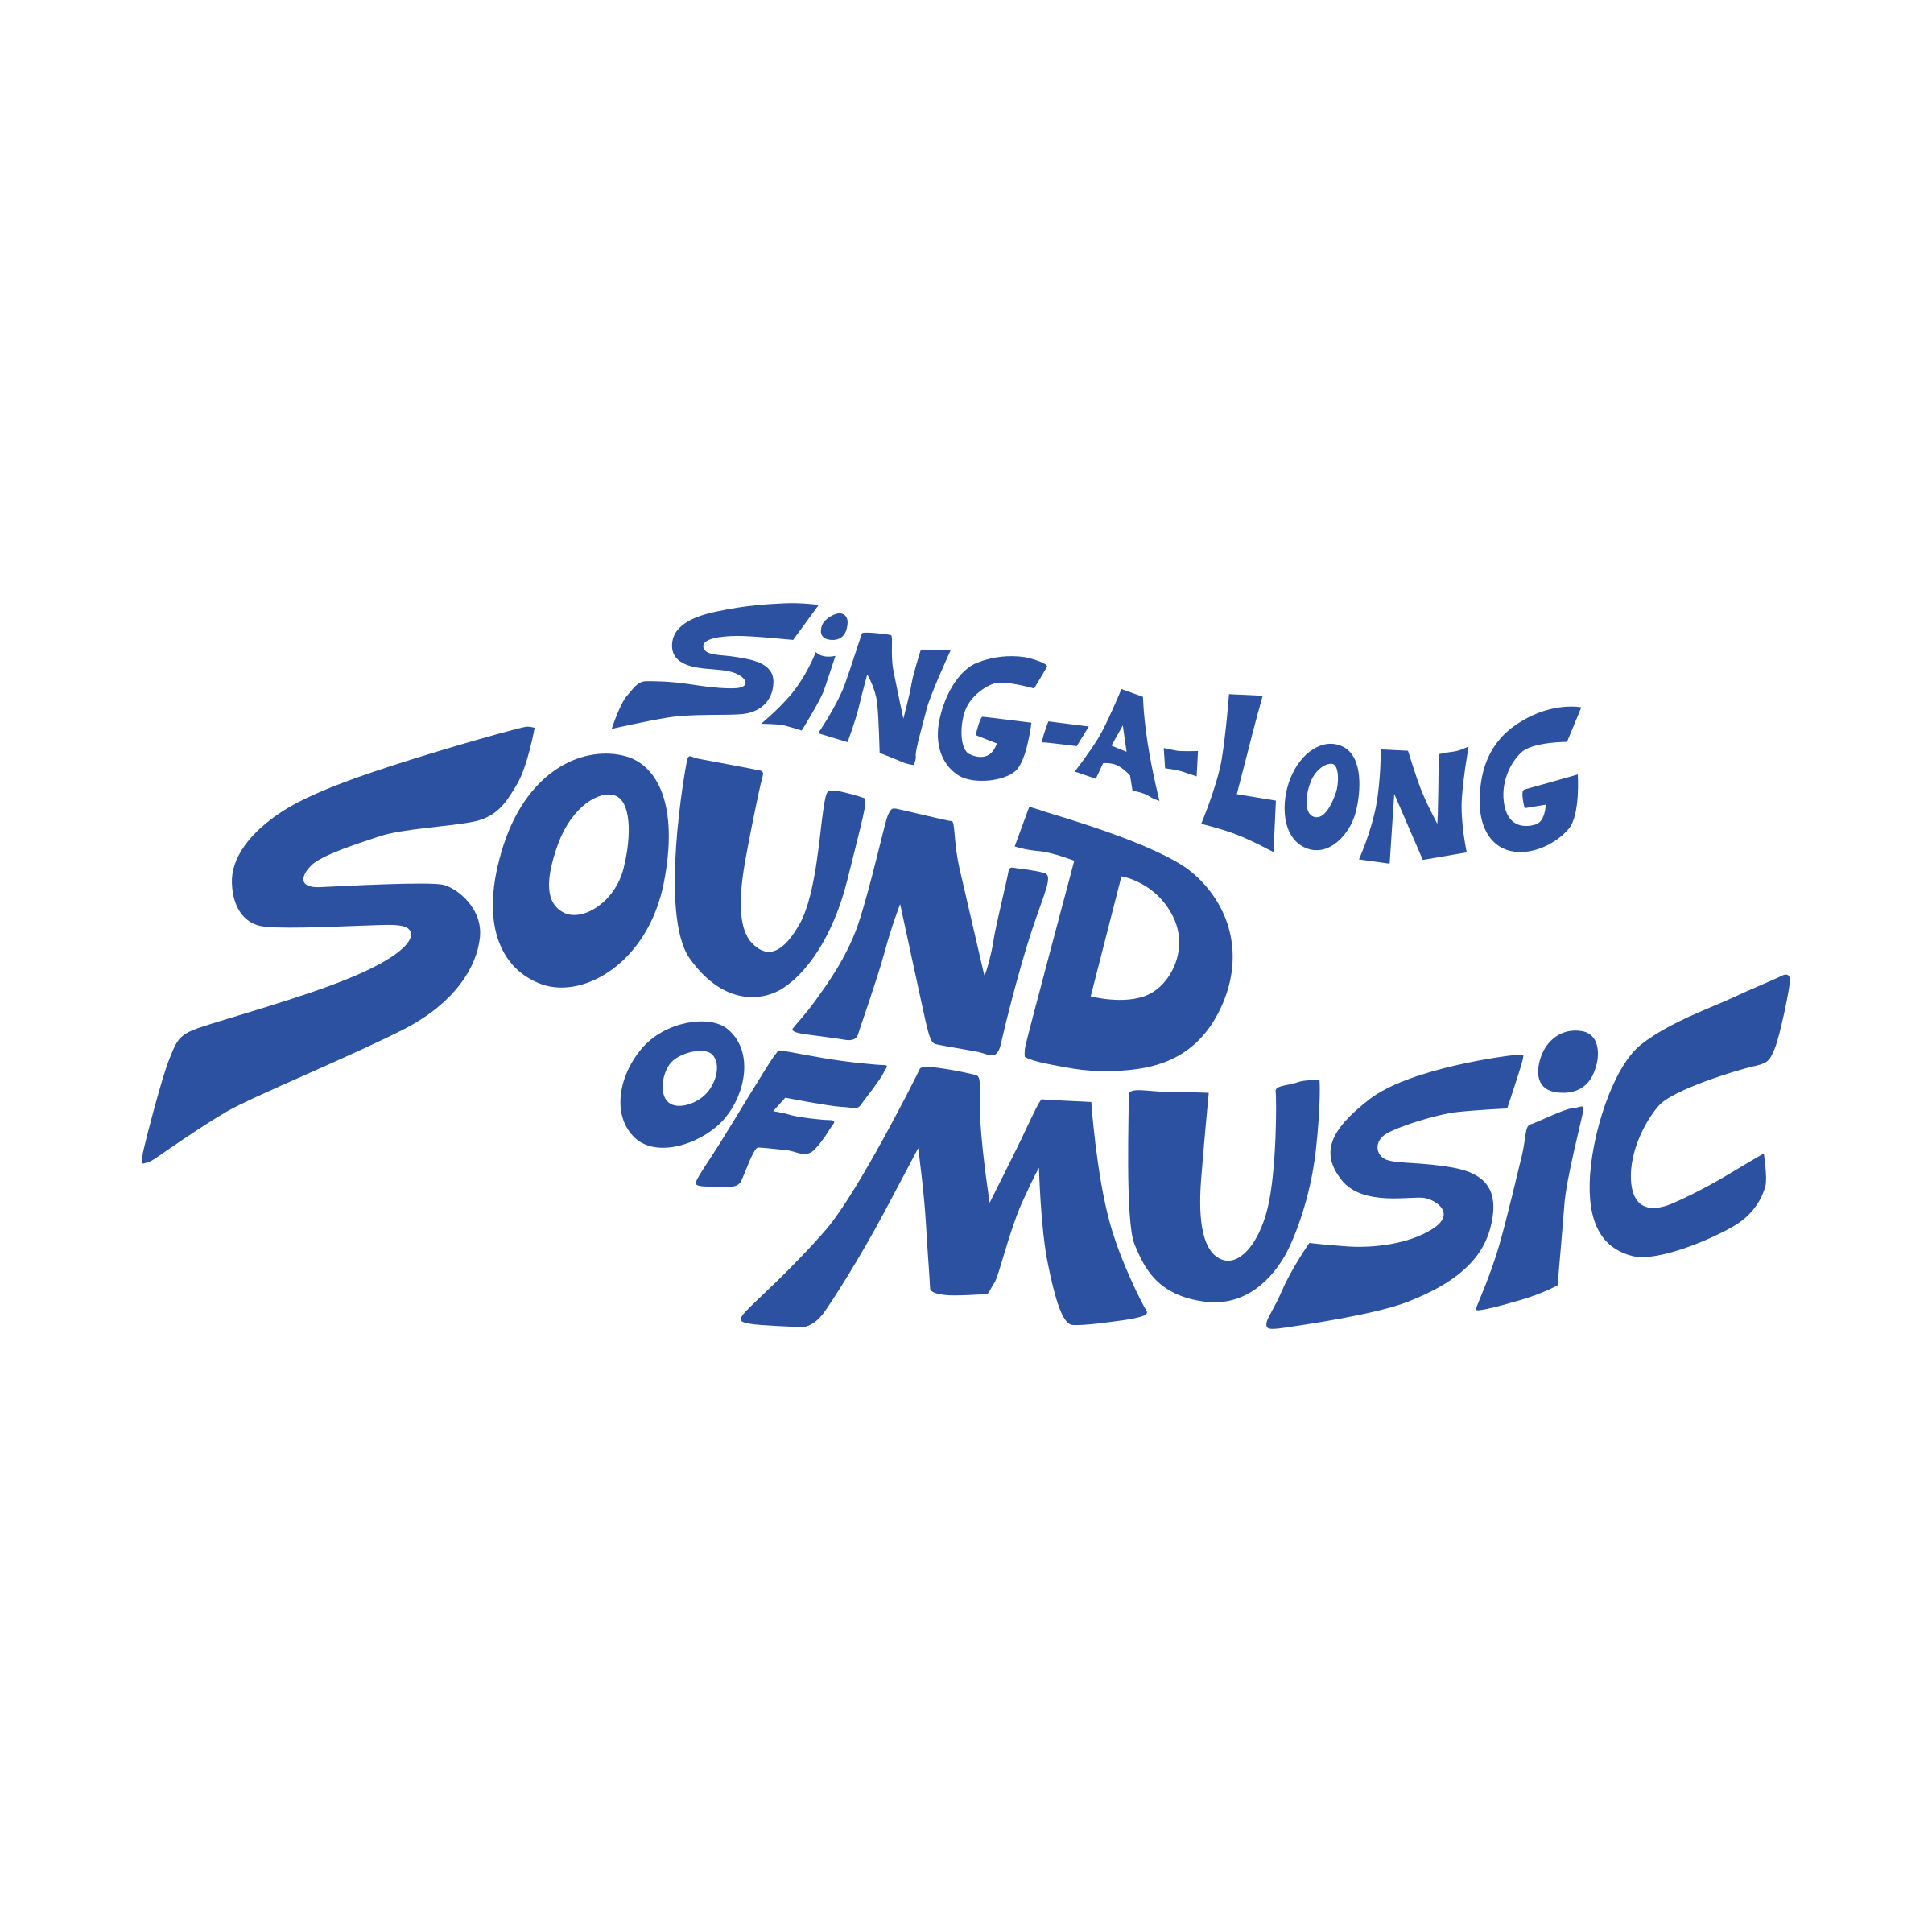 Sing a long a Sound of Music Logo PNG Transparent & SVG.